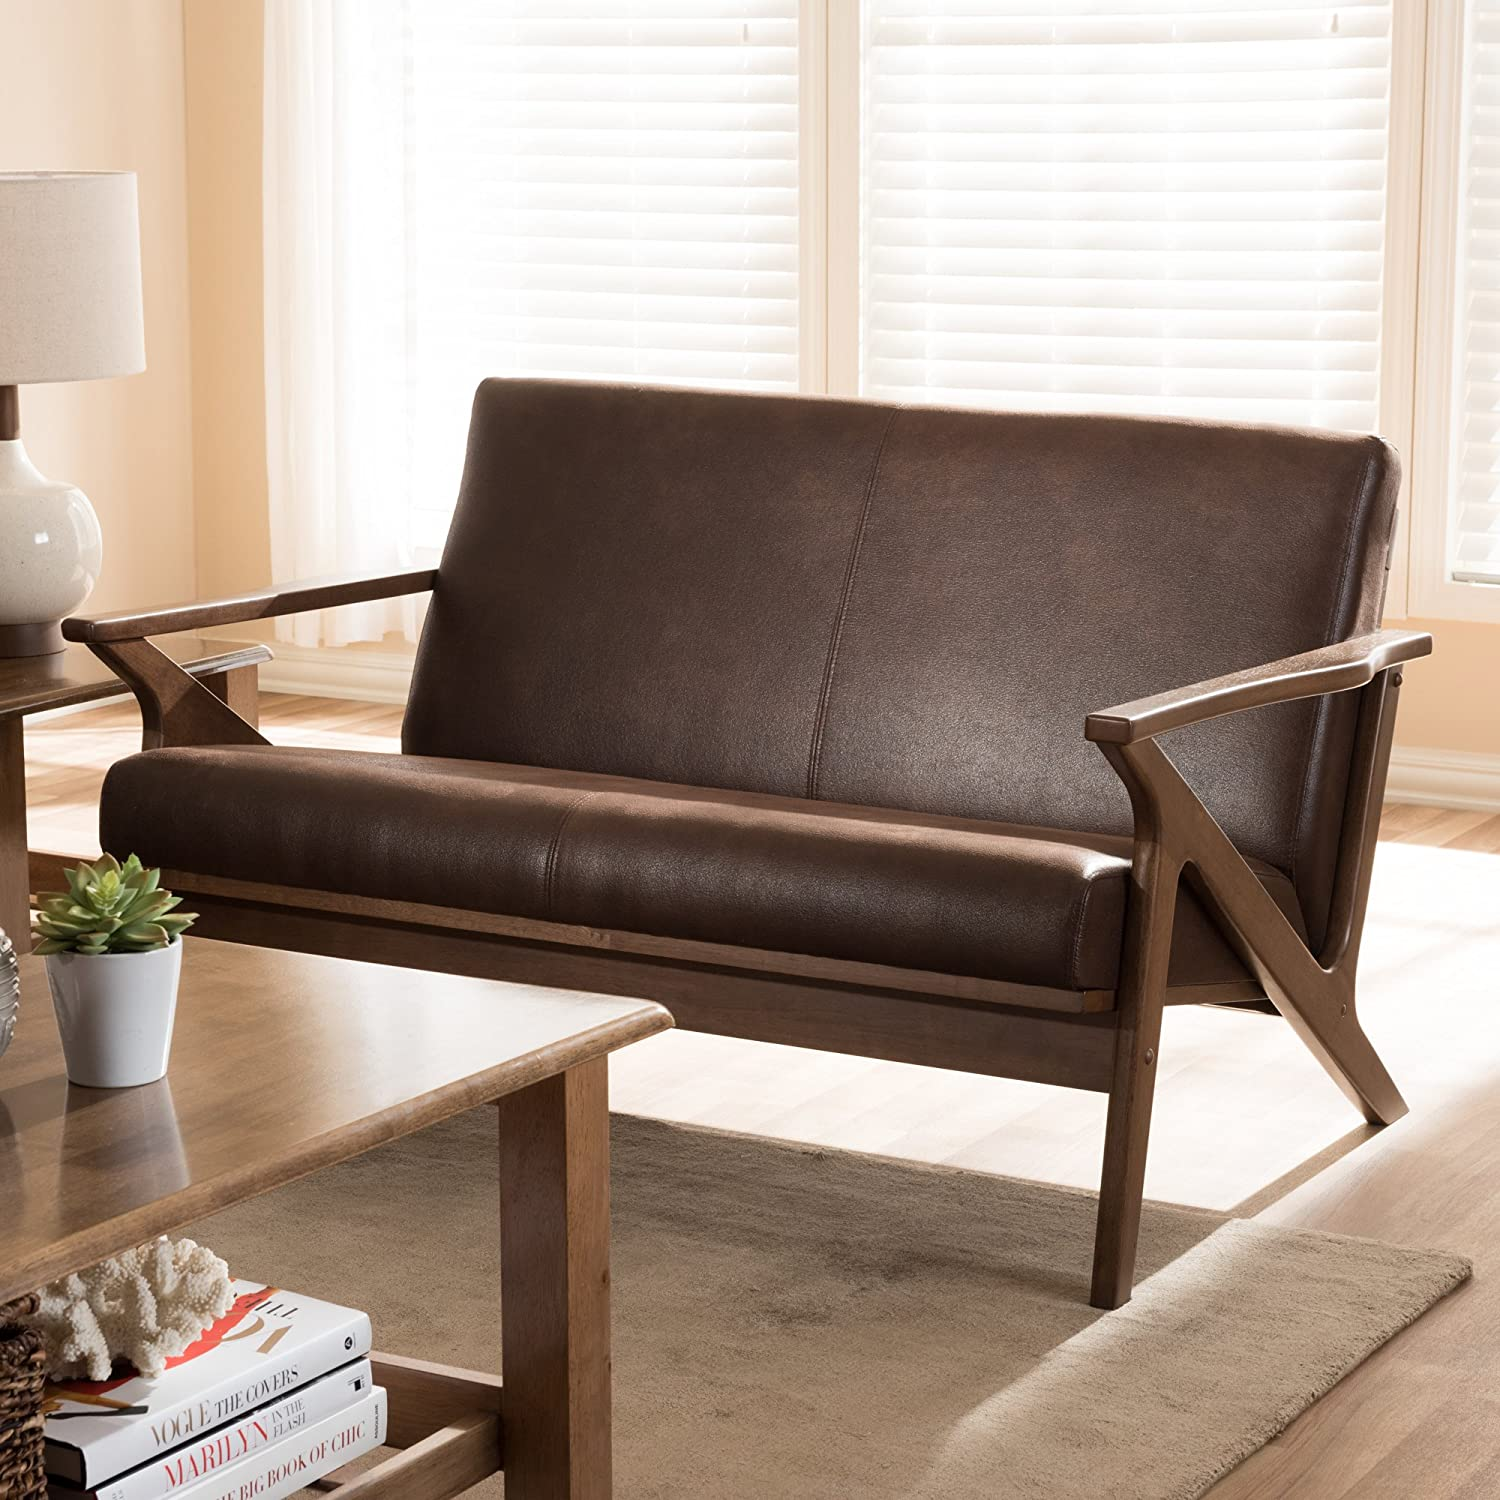 Marvelous Baxton Studio 2 Seater Loveseat In Walnut And Dark Brown Onthecornerstone Fun Painted Chair Ideas Images Onthecornerstoneorg